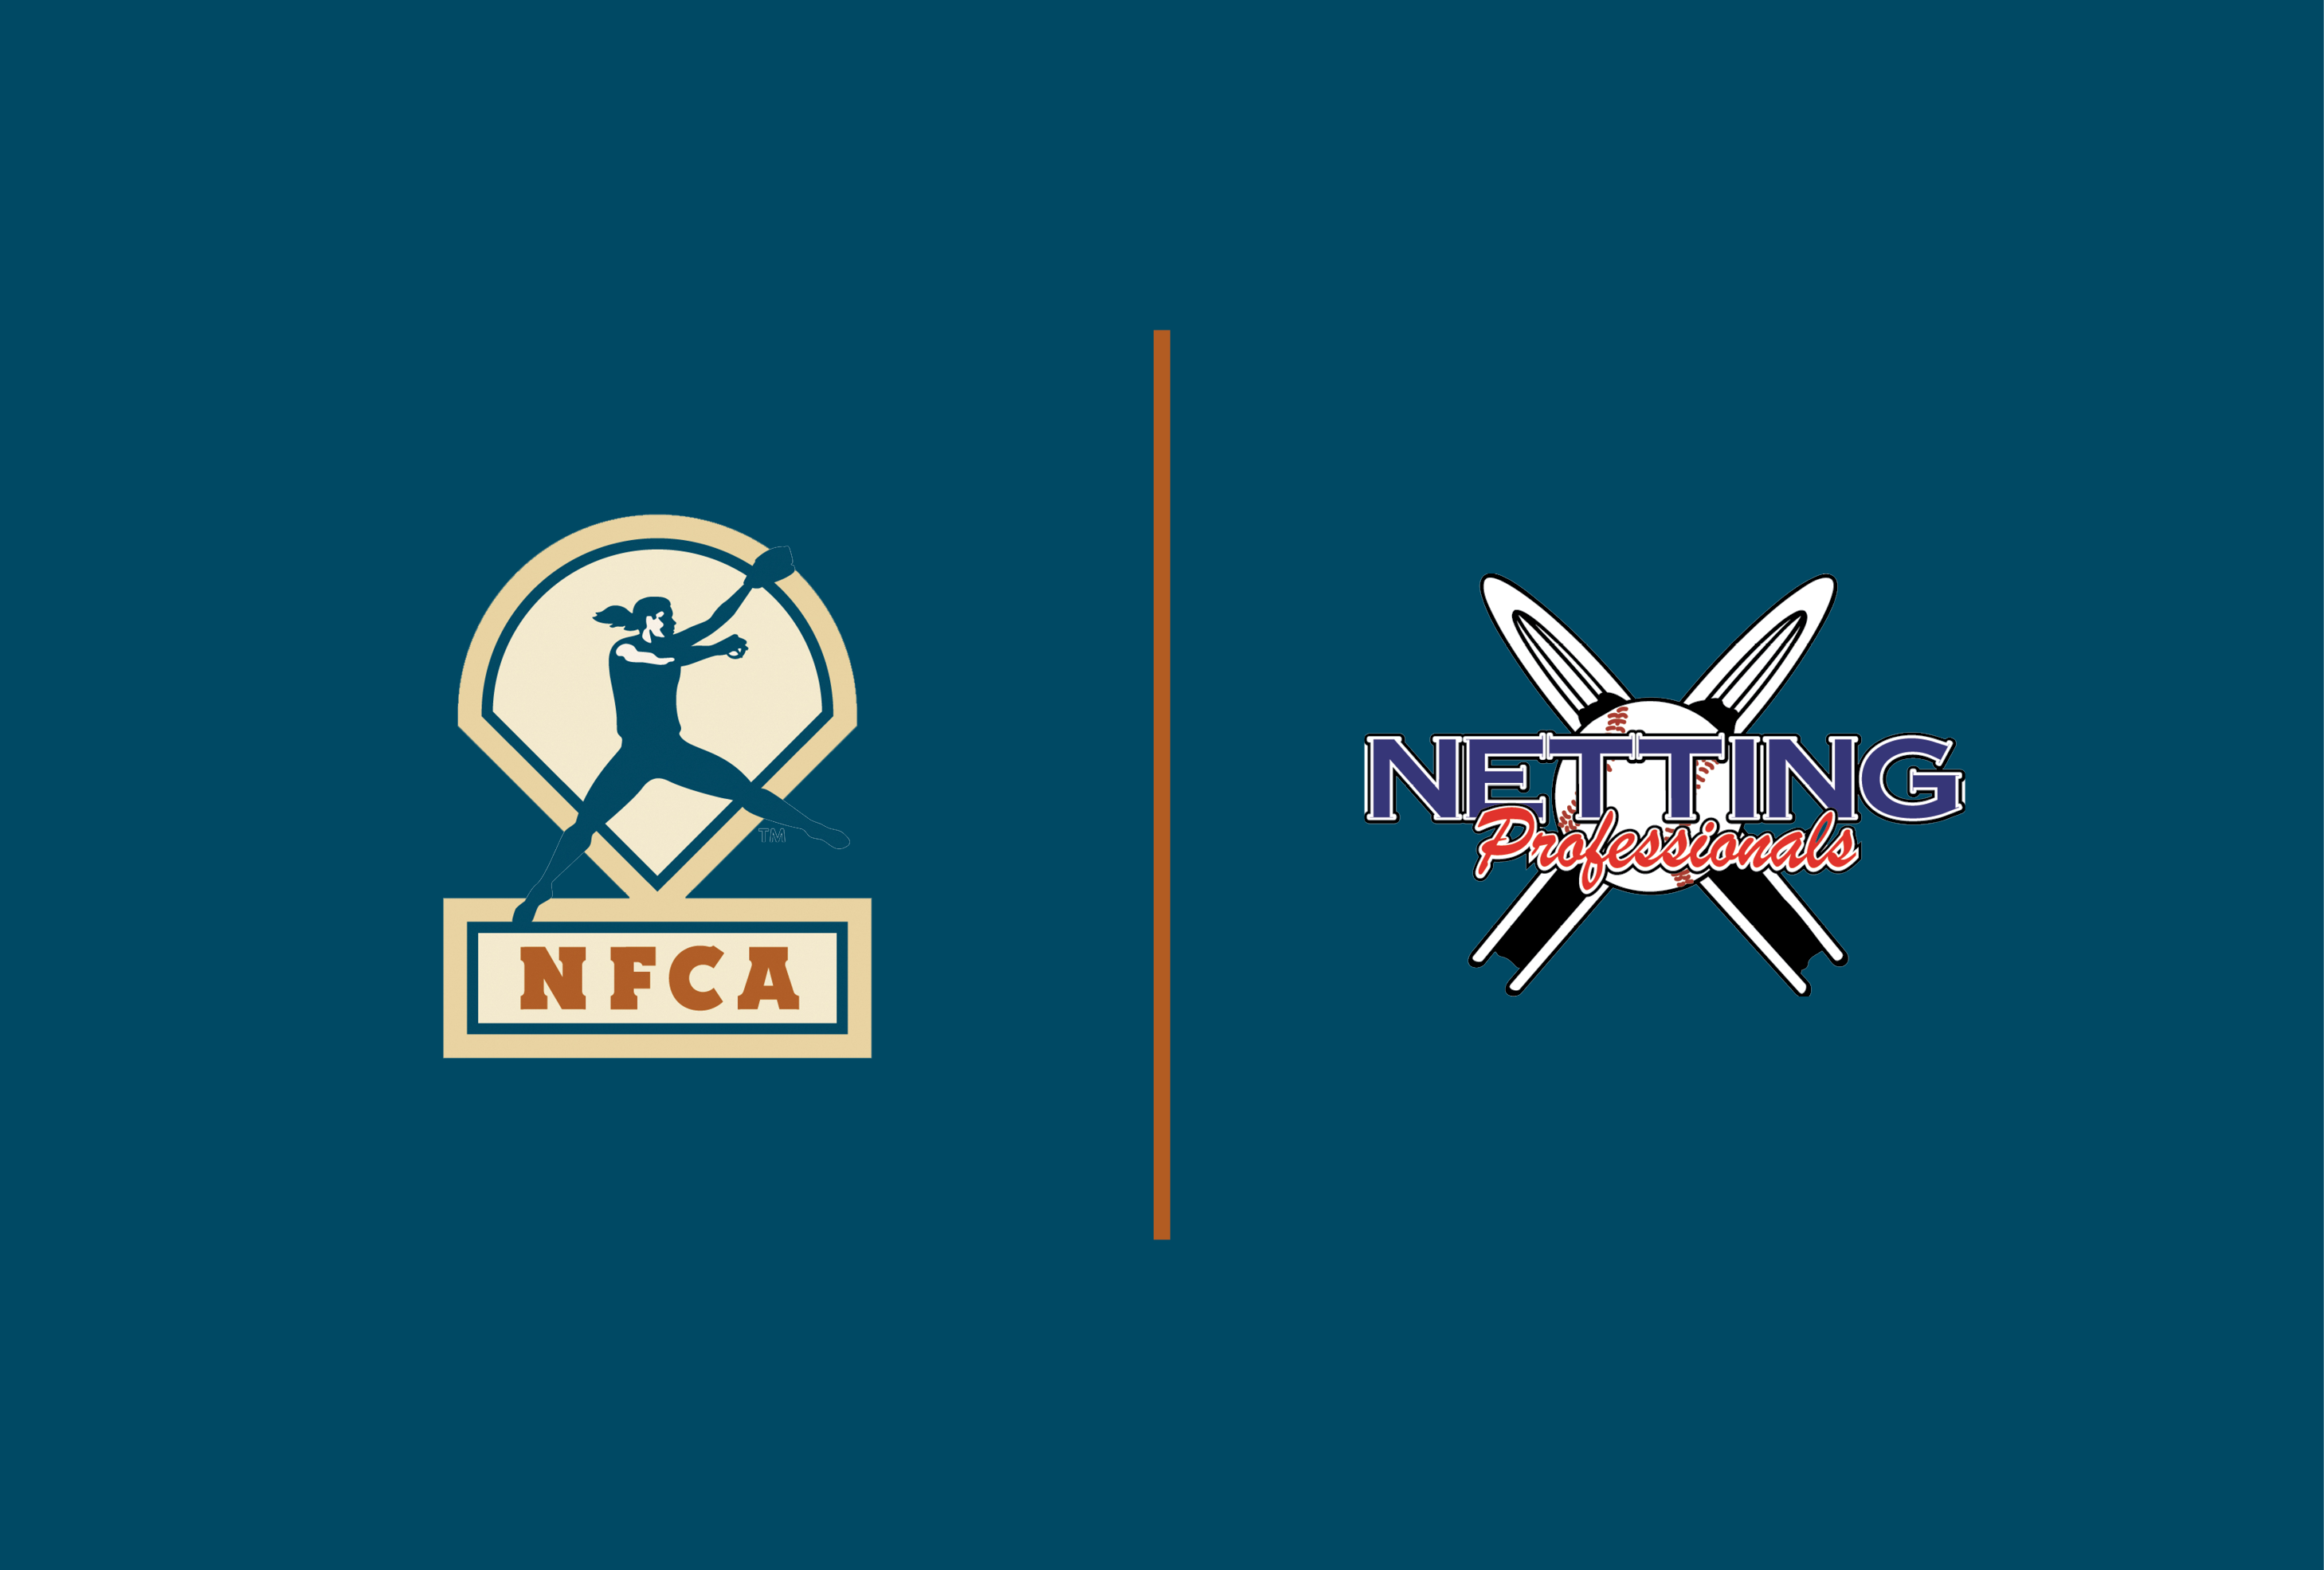 Netting Professionals renews as an NFCA Official Sponsor